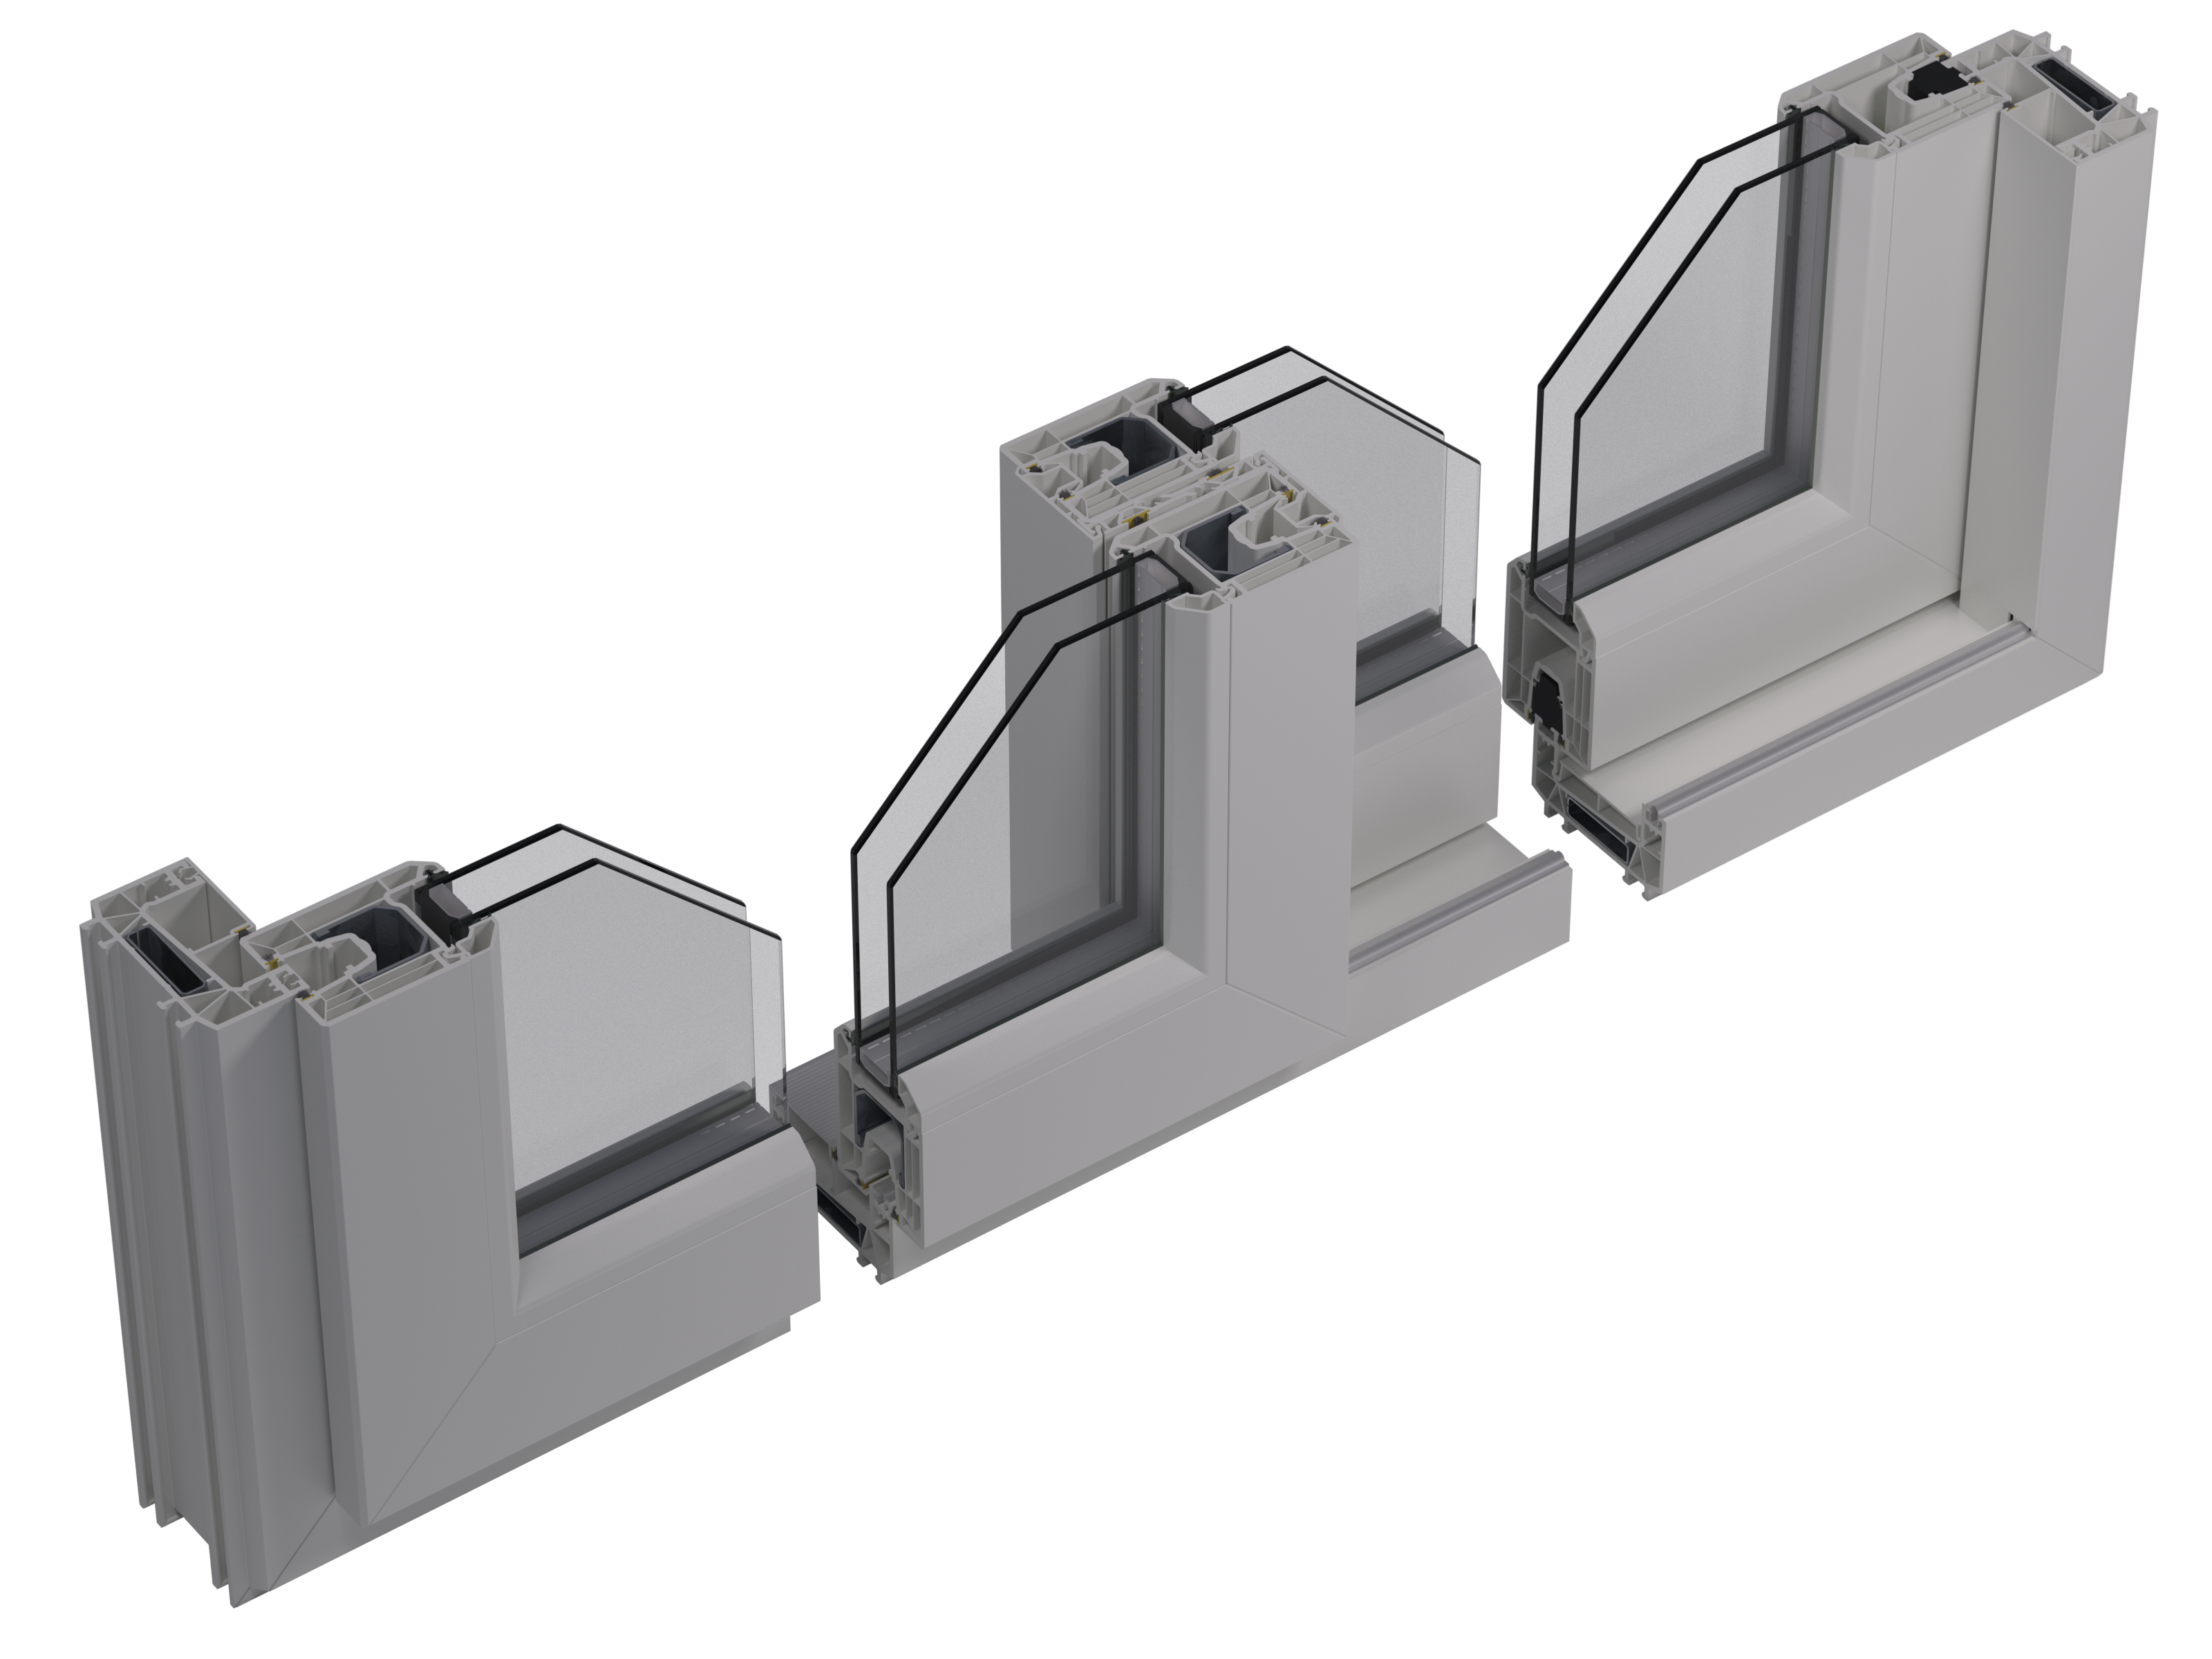 New Mono-rail sliding system